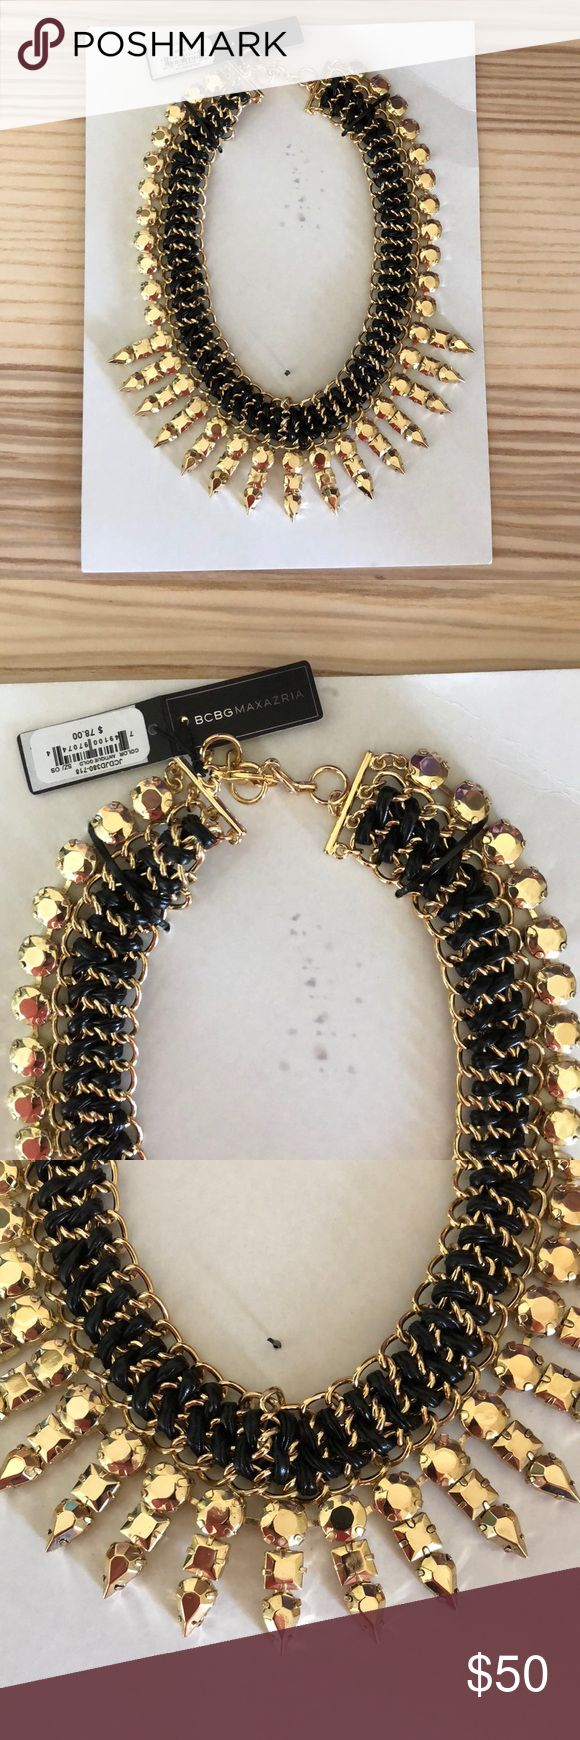 Brand new with tags. BCBG Spike Necklace Brand new BCBG Spike Necklace. BCBG Jewelry Necklaces